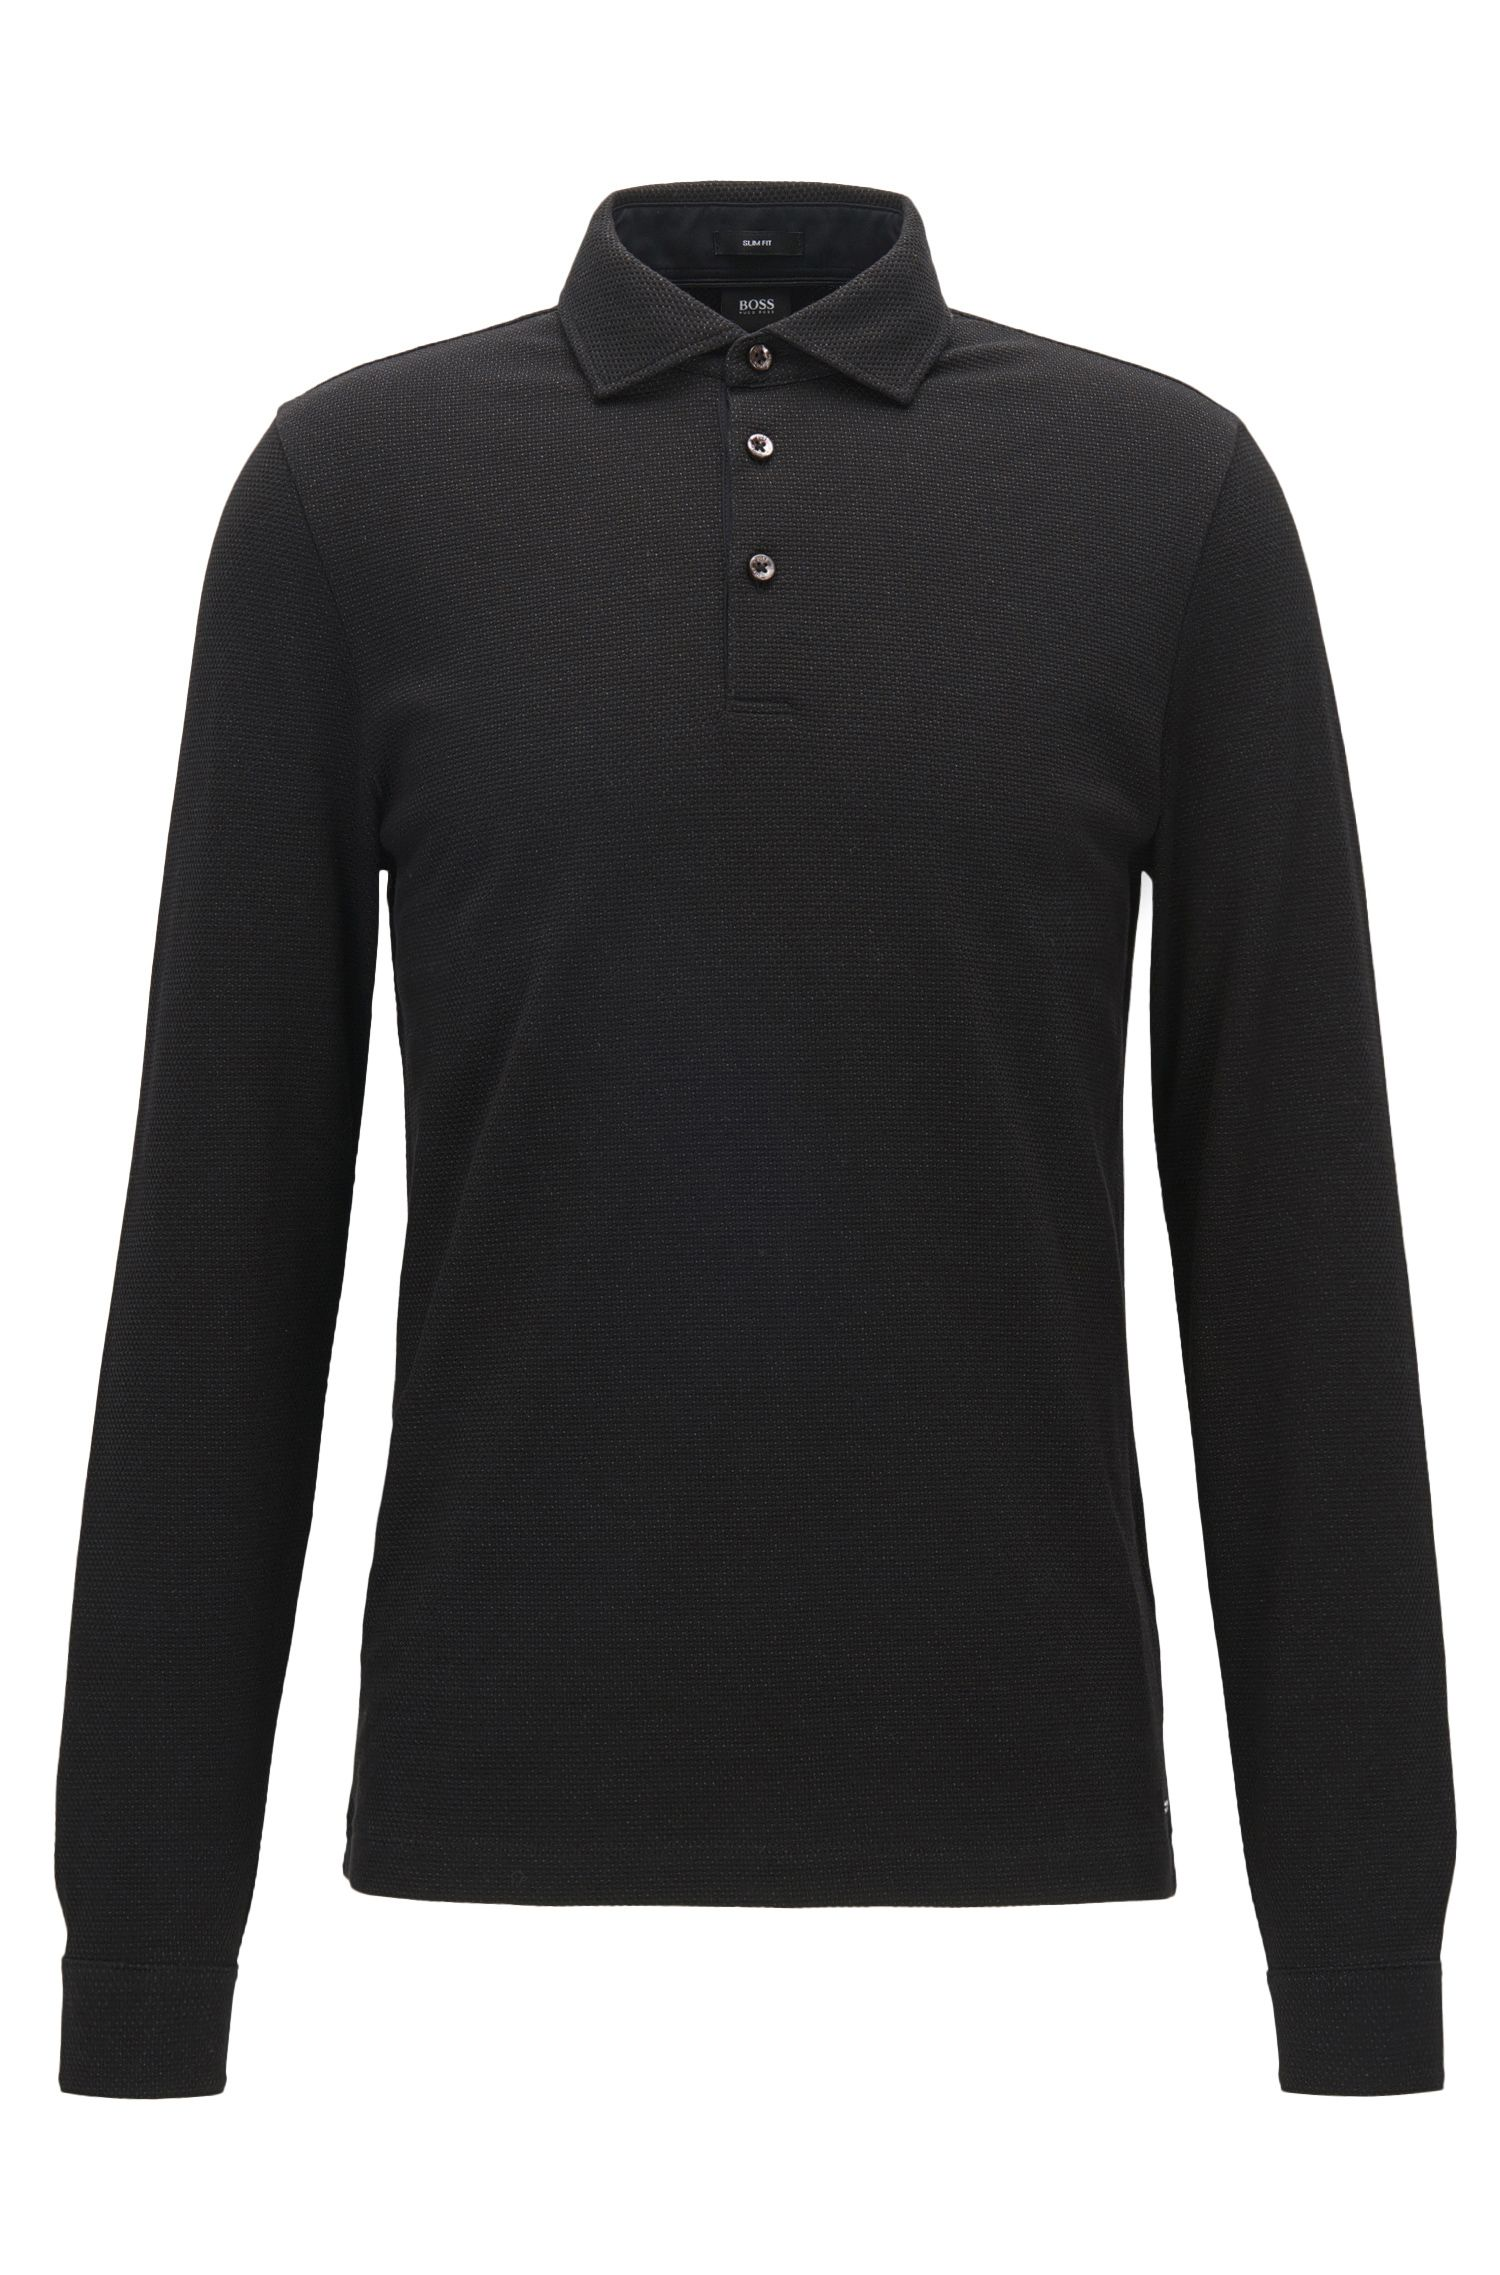 Polo jacquard Slim Fit à manches longues en coton bicolore